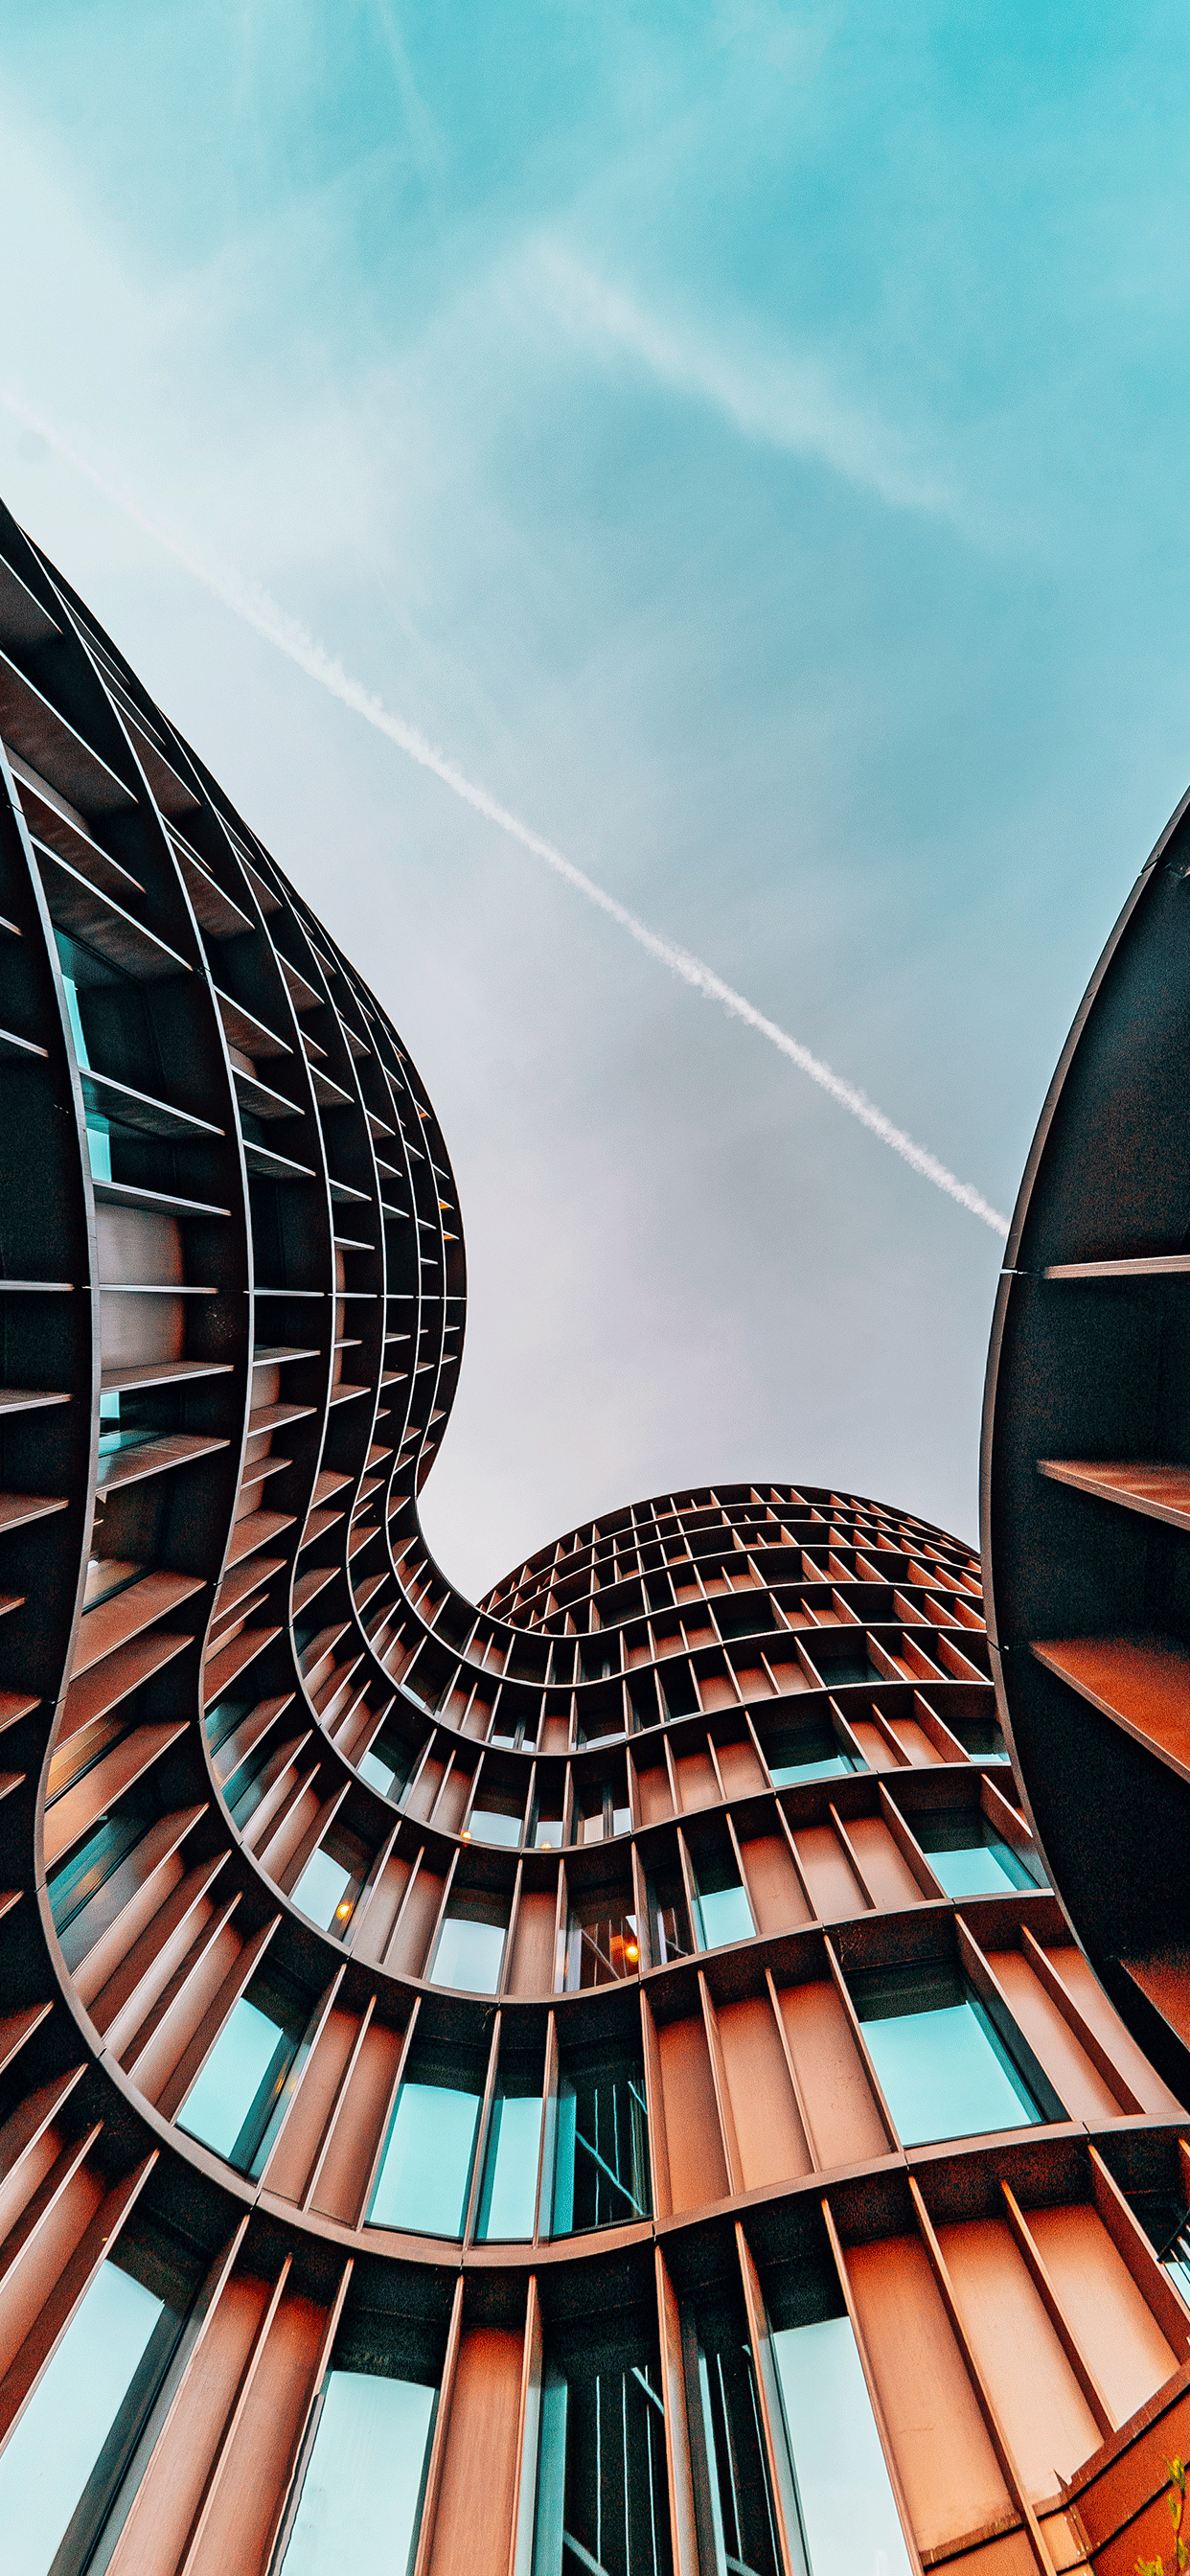 iPhone wallpapers architecture axel towers Fonds d'écran iPhone du 01/07/2019